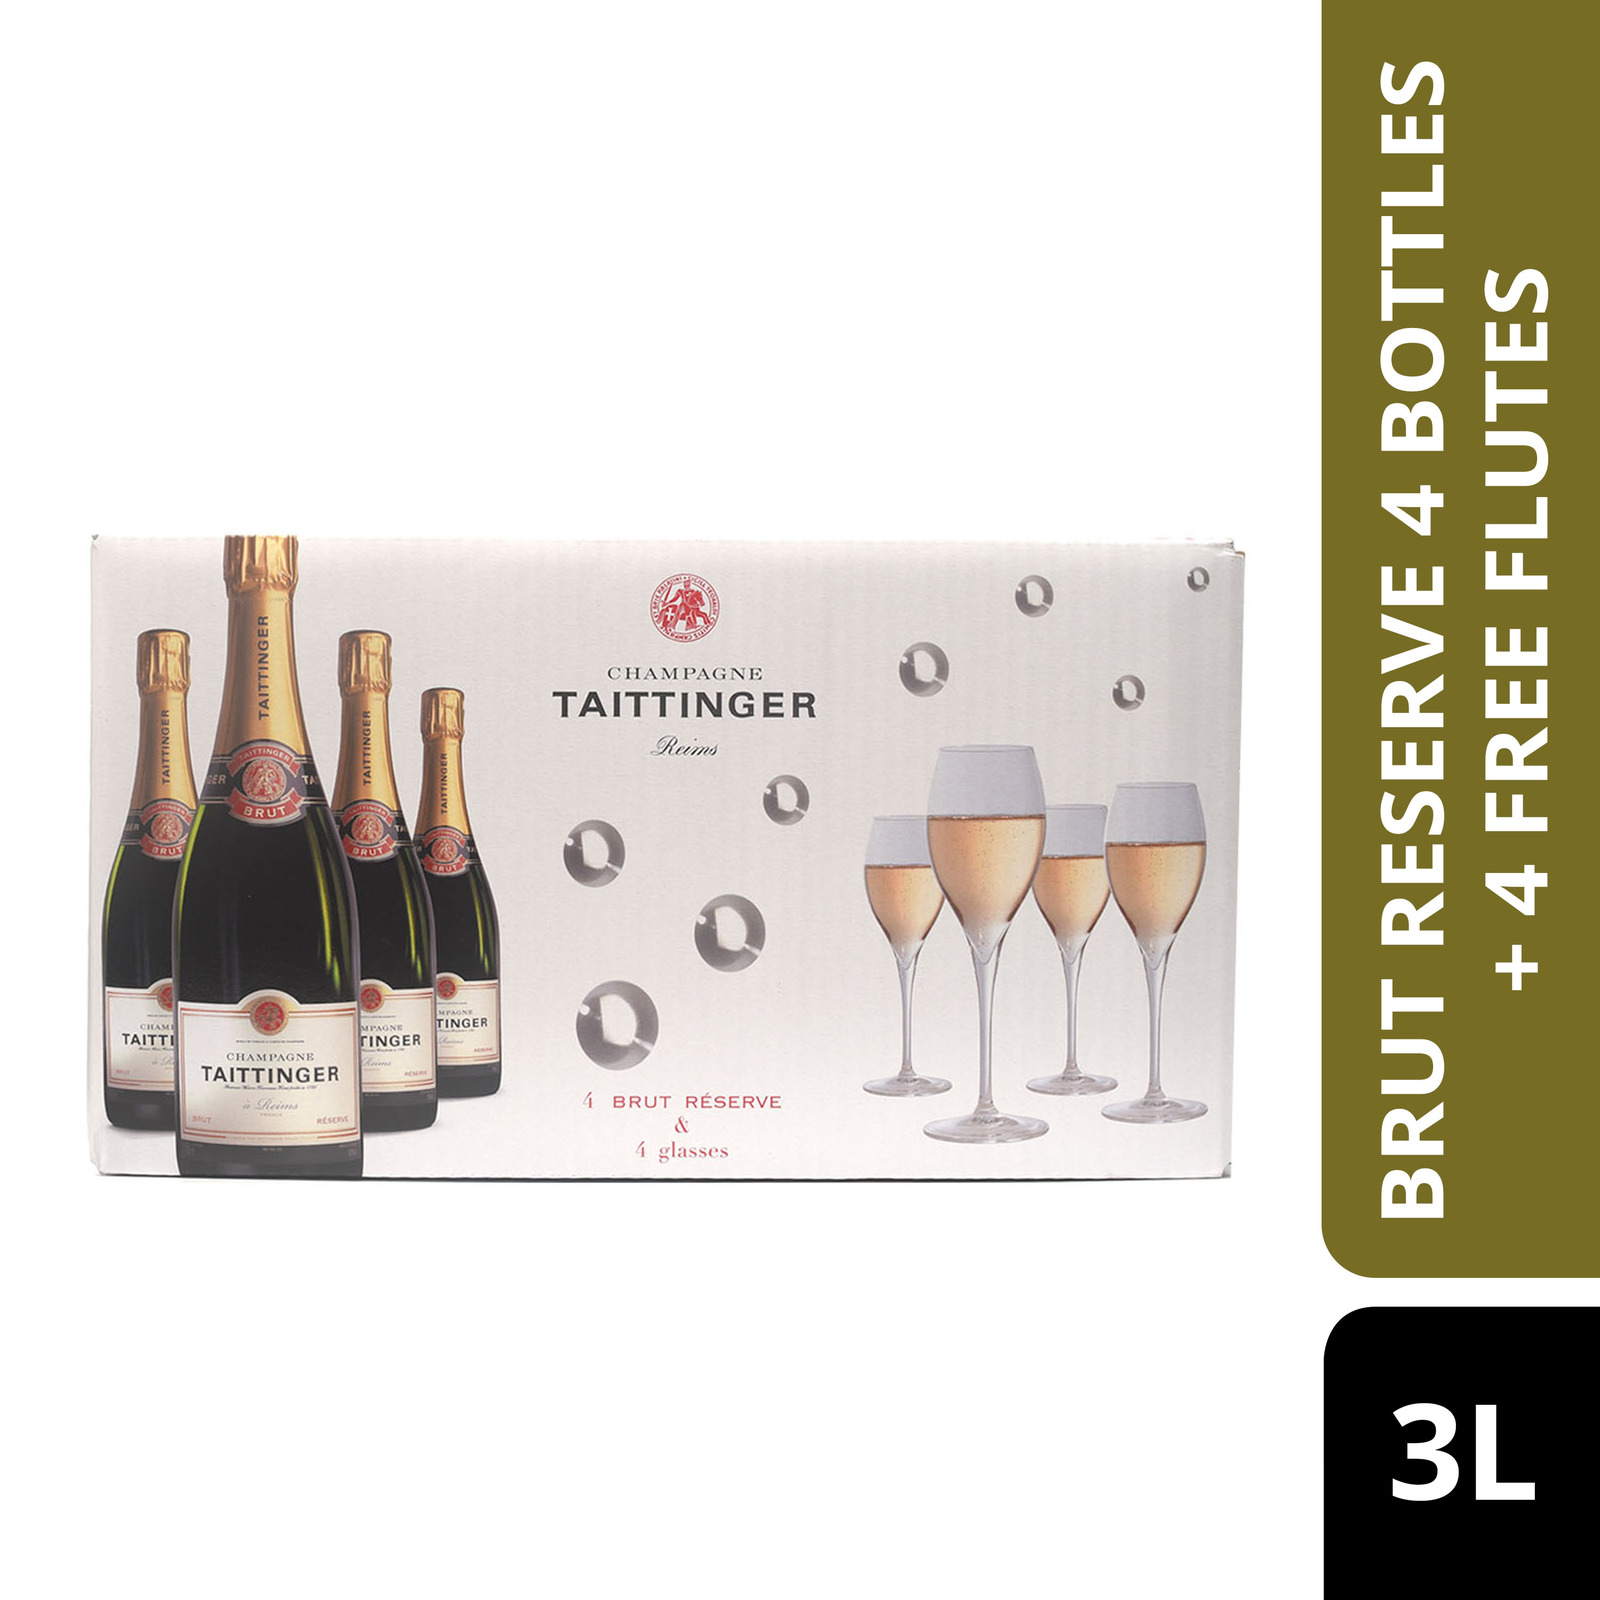 Taittinger Brut Reserve 4 Bottles + 4 Free Flutes-By Culina